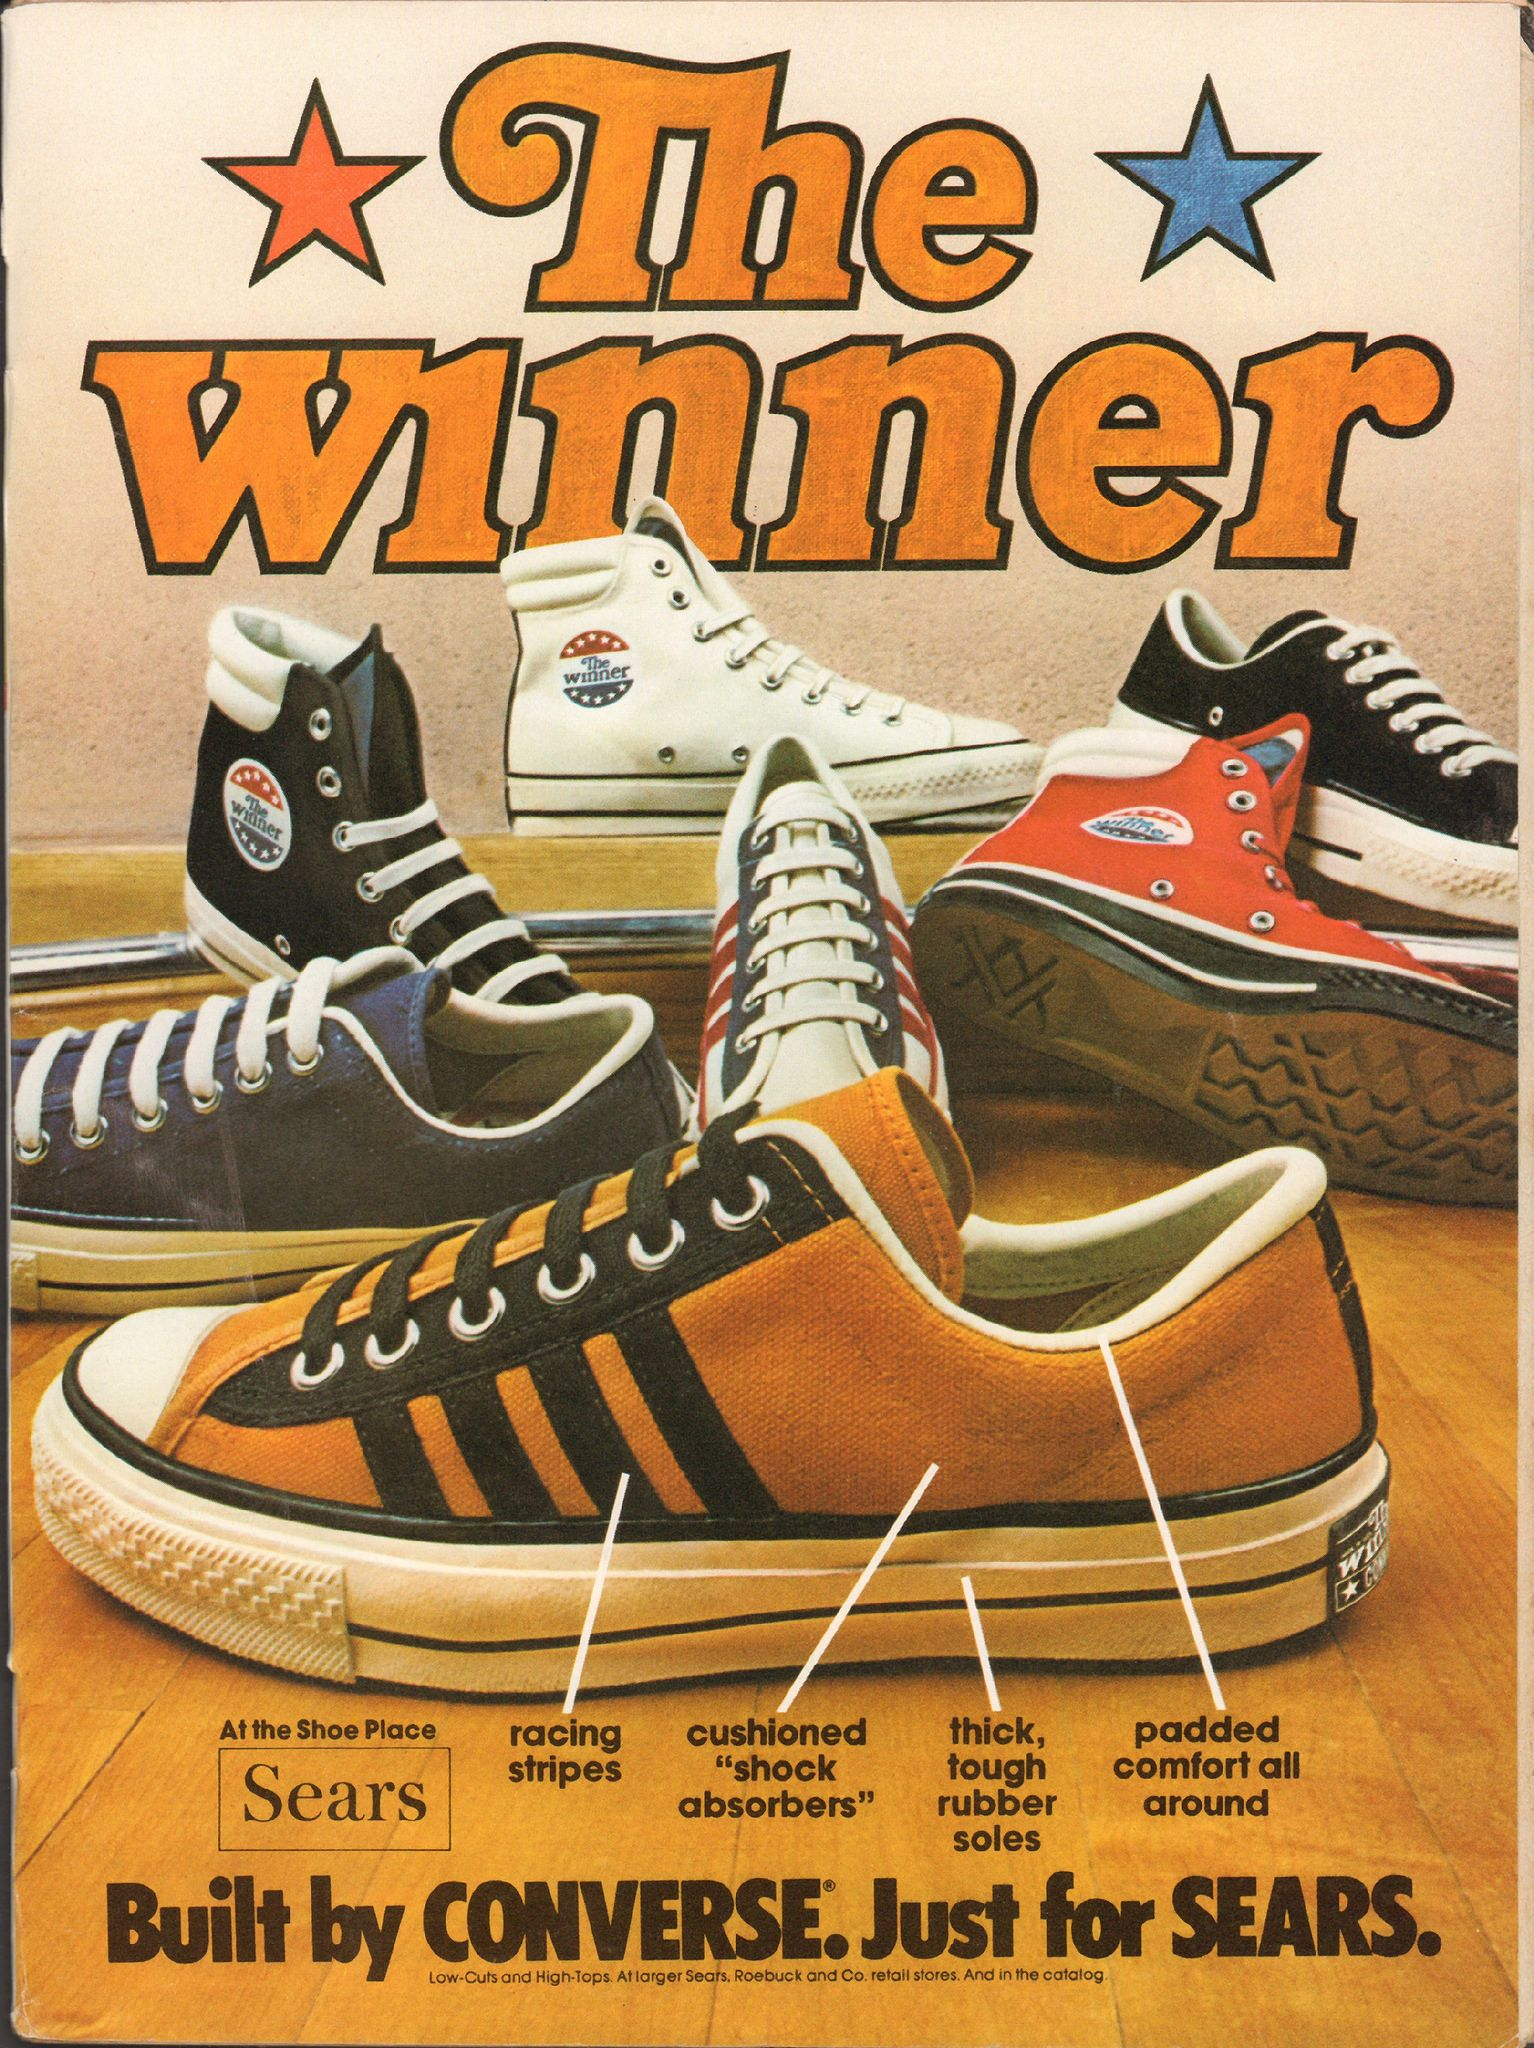 1974 Sears Converse Tennis Shoes Advertisement Motor Trend